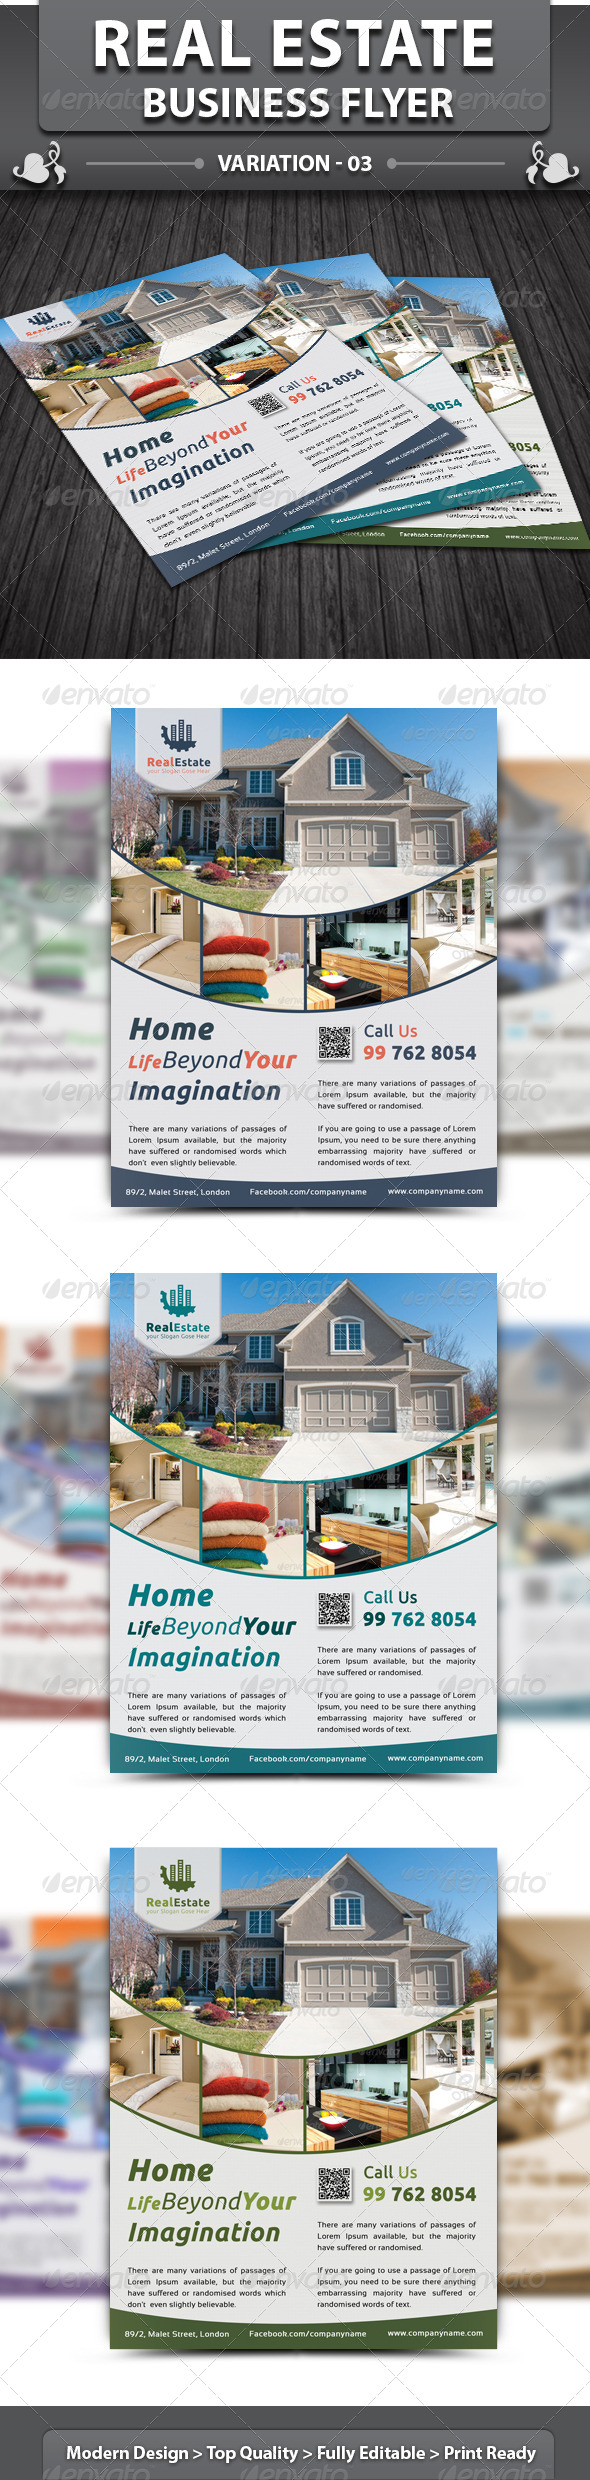 Real Estate Business Flyer | Volume 3